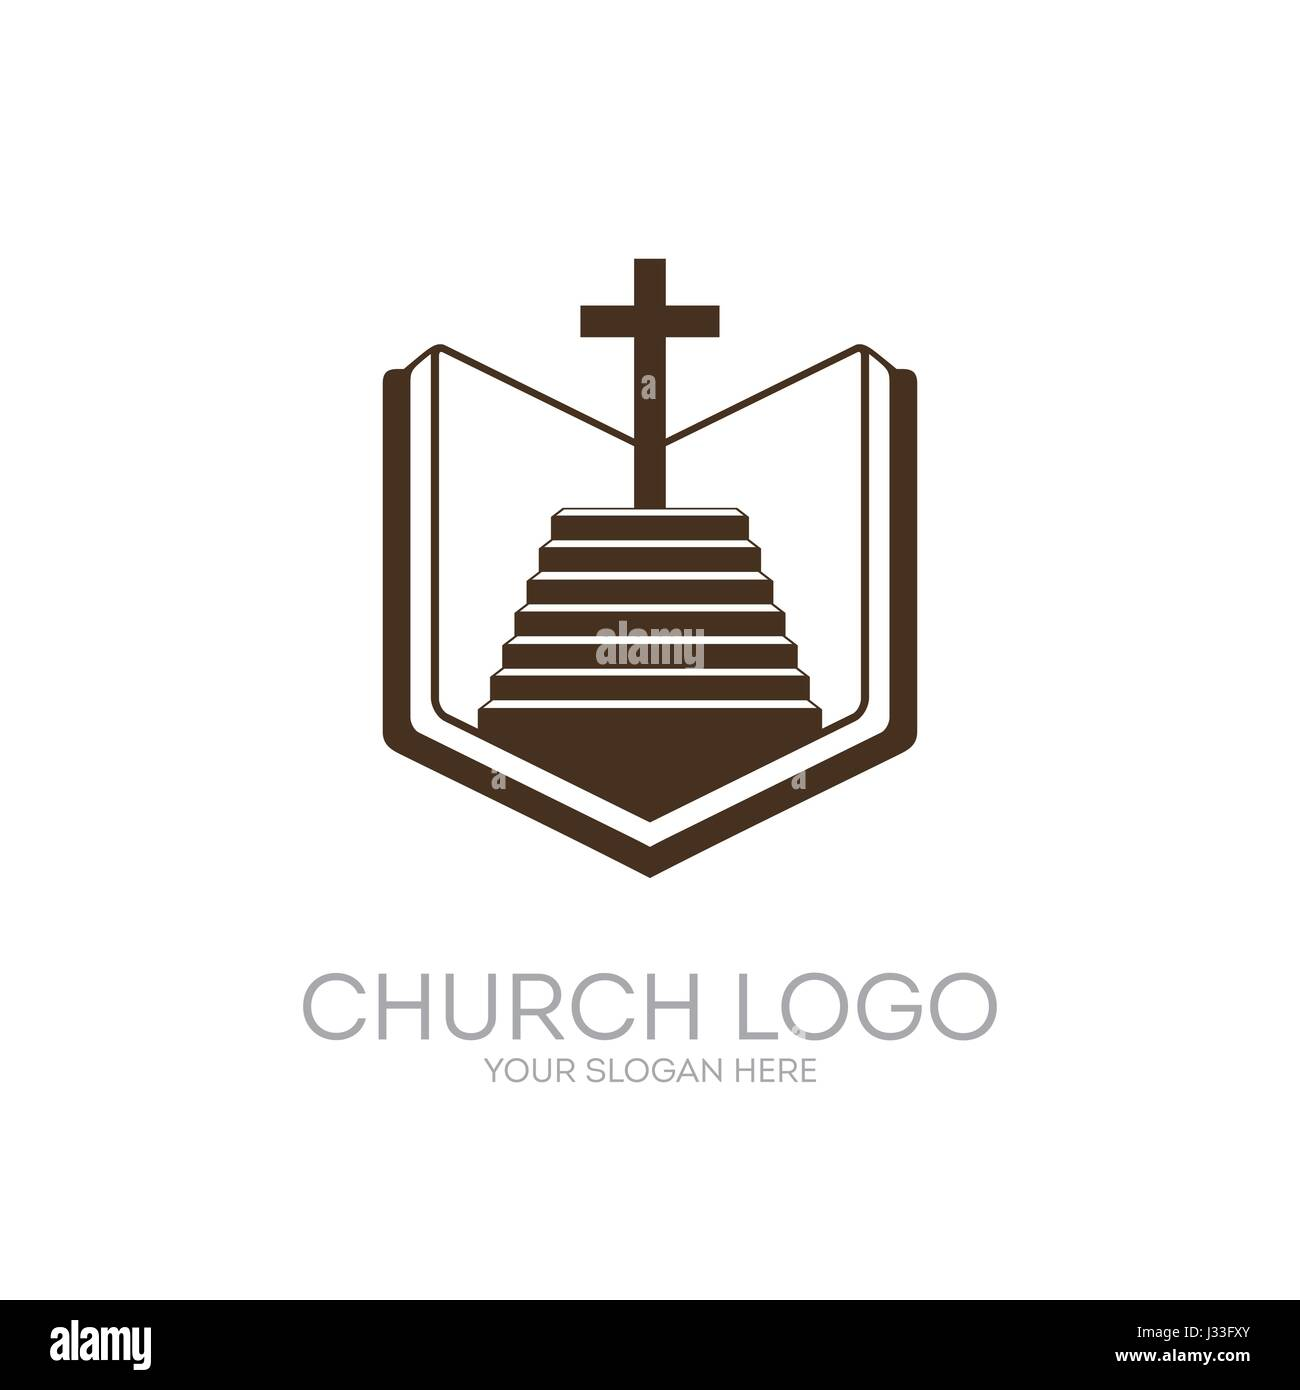 Church logo christian symbols bible holy scripture the christian symbols bible holy scripture the staircase leading to the lord and savior jesus christ on the cross at calvary biocorpaavc Image collections